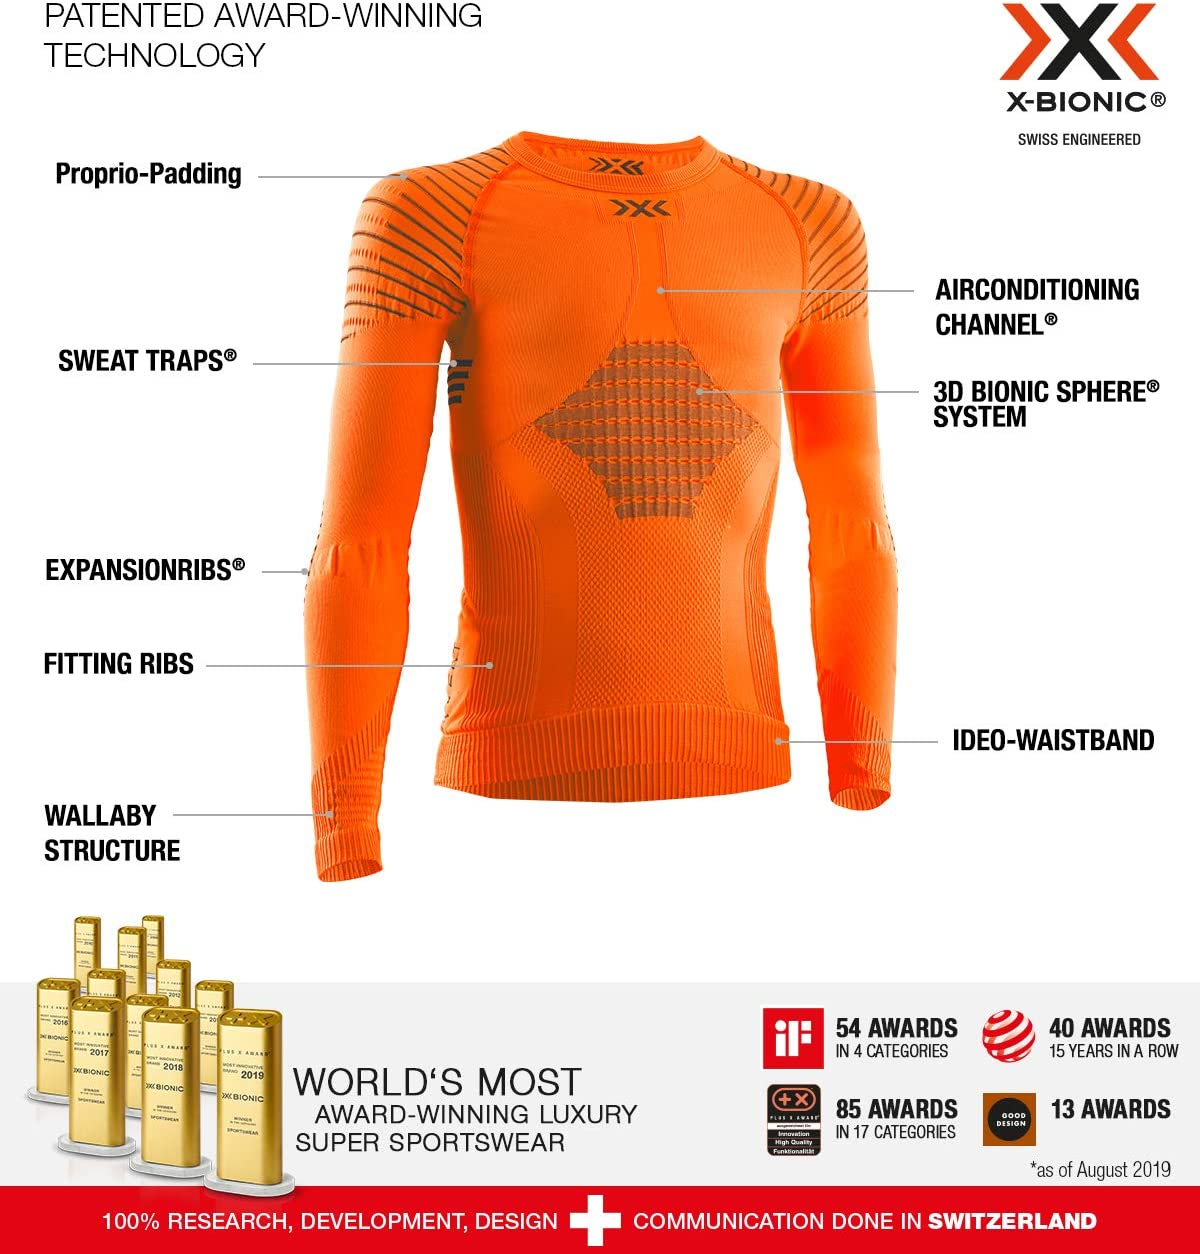 X-Bionic Invent 4.0 Shirt Round Neck Long Sleeves Junior Capa De Base Camiseta Funcional Unisex ni/ños